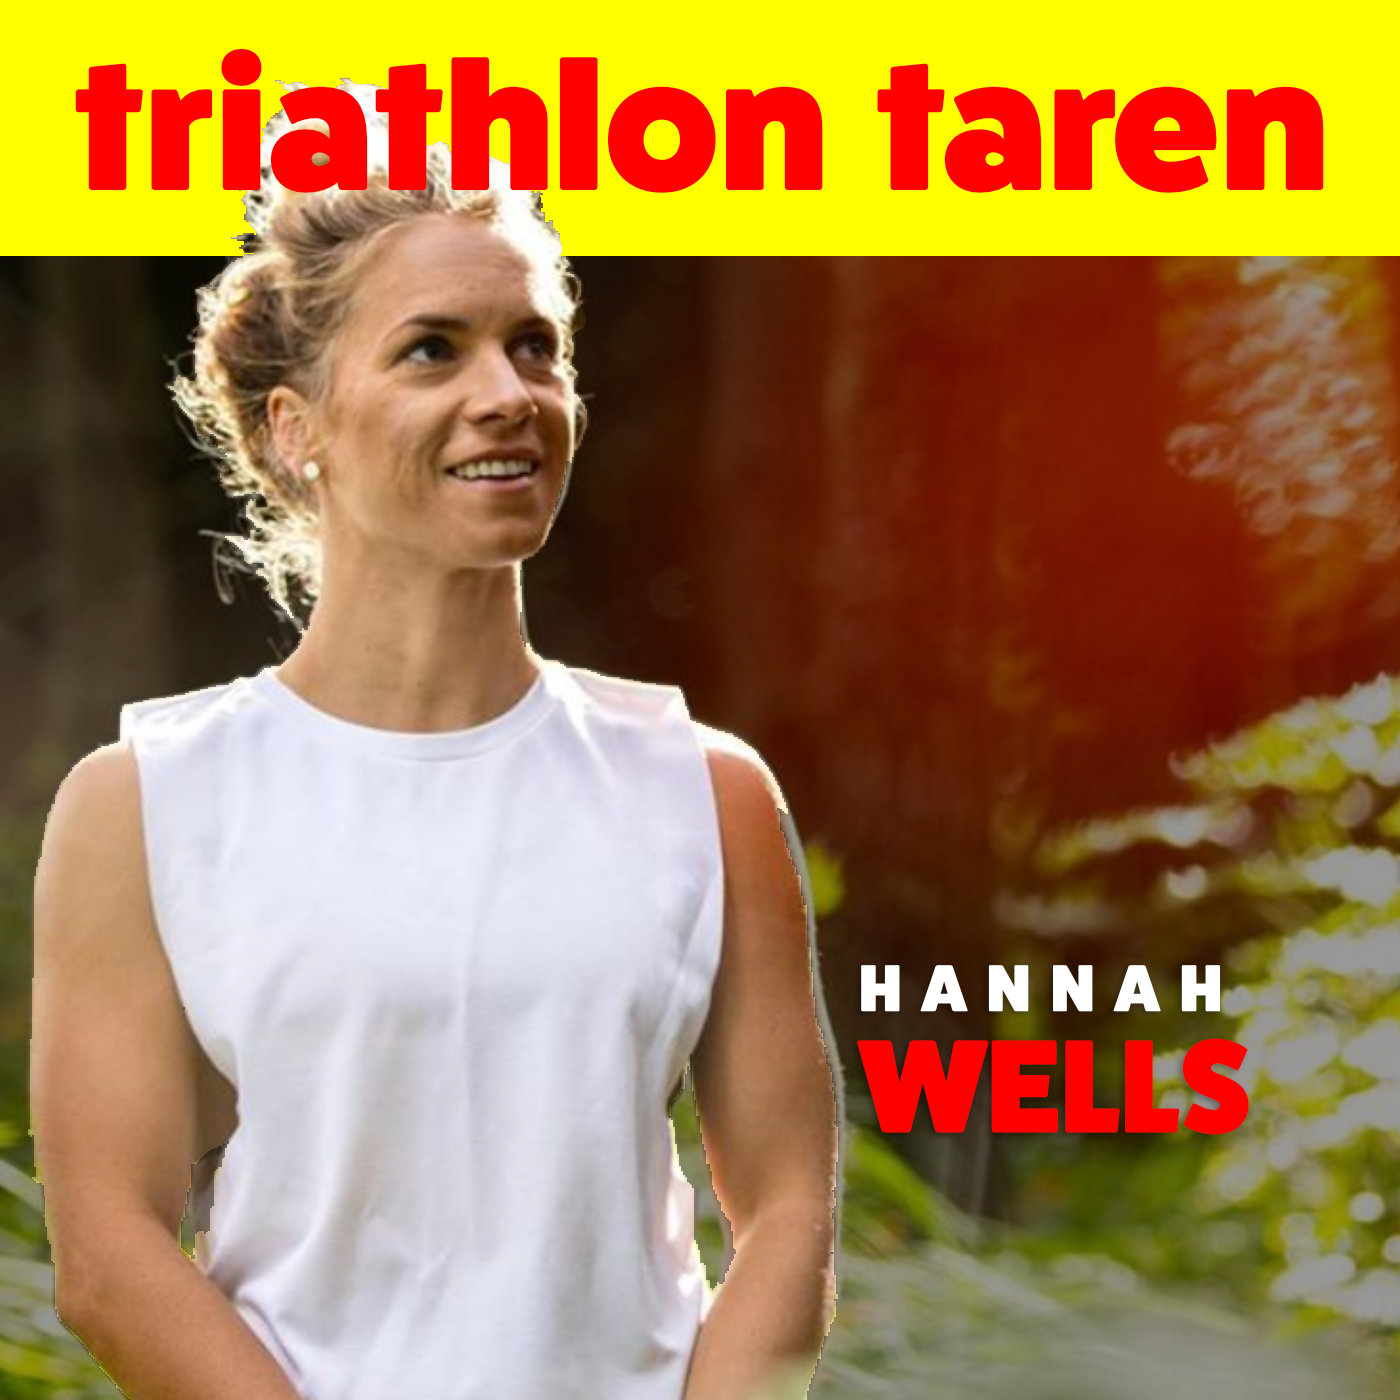 Pro Triathlete Dr. Hannah Wells Wins Four of Her First Seven Races